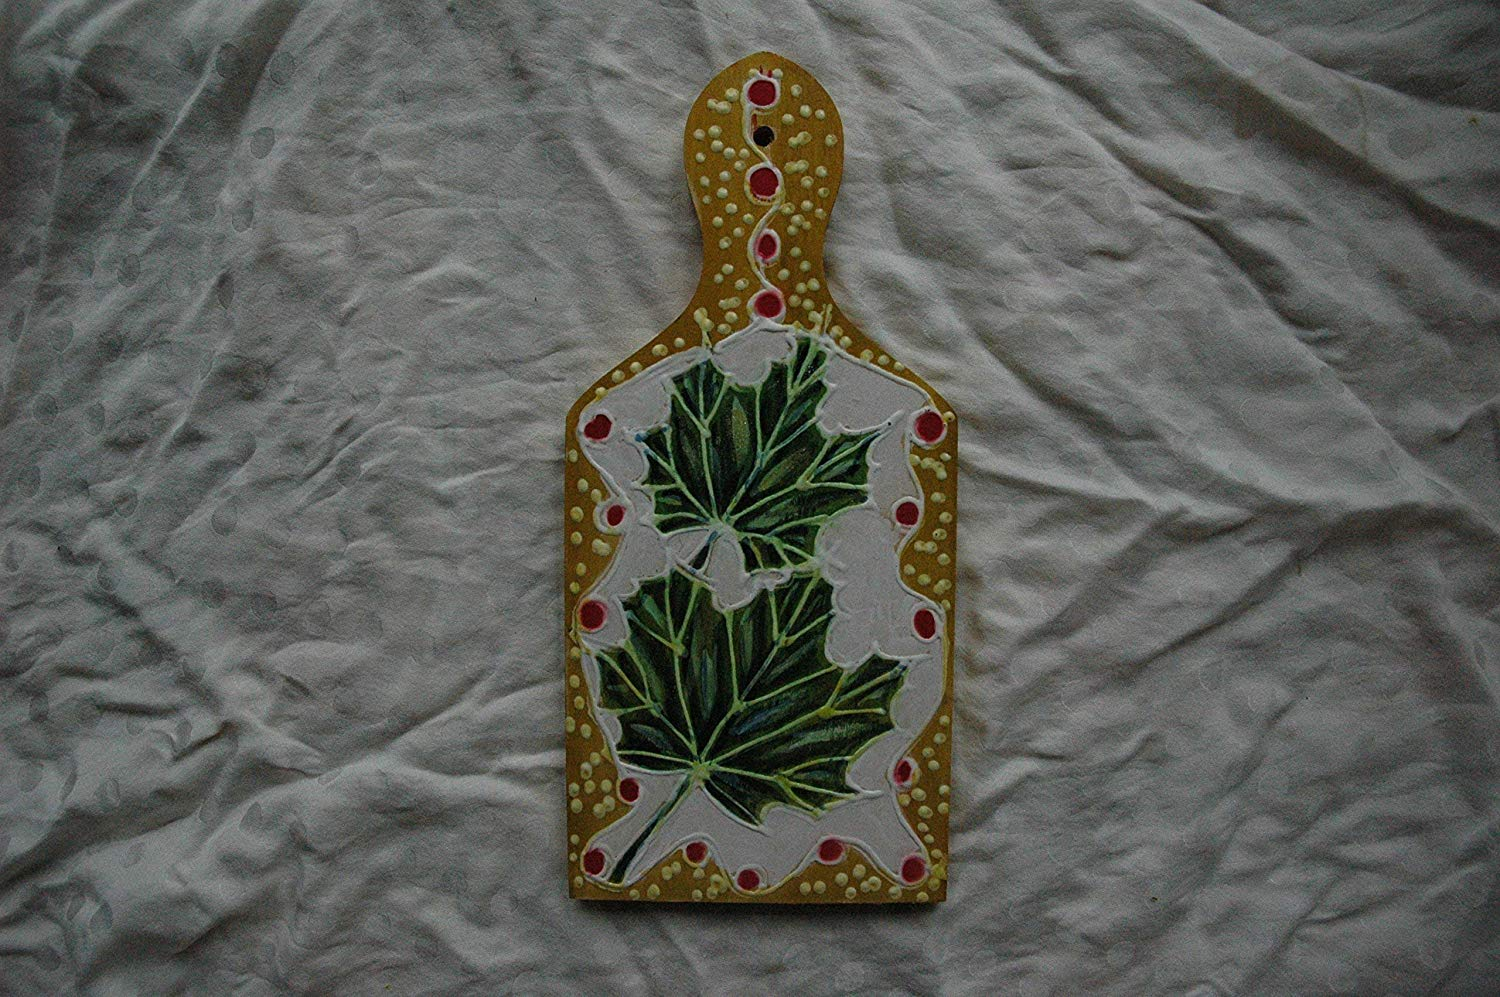 Sale!!!10% Off,Hand Painted Sycamore Leaves Wooden Cutting Board, Art Gift, Leaves of the Sycamore Botanical, Leaves Wall Decor, Mini Green Sycamore Tree Leaf.